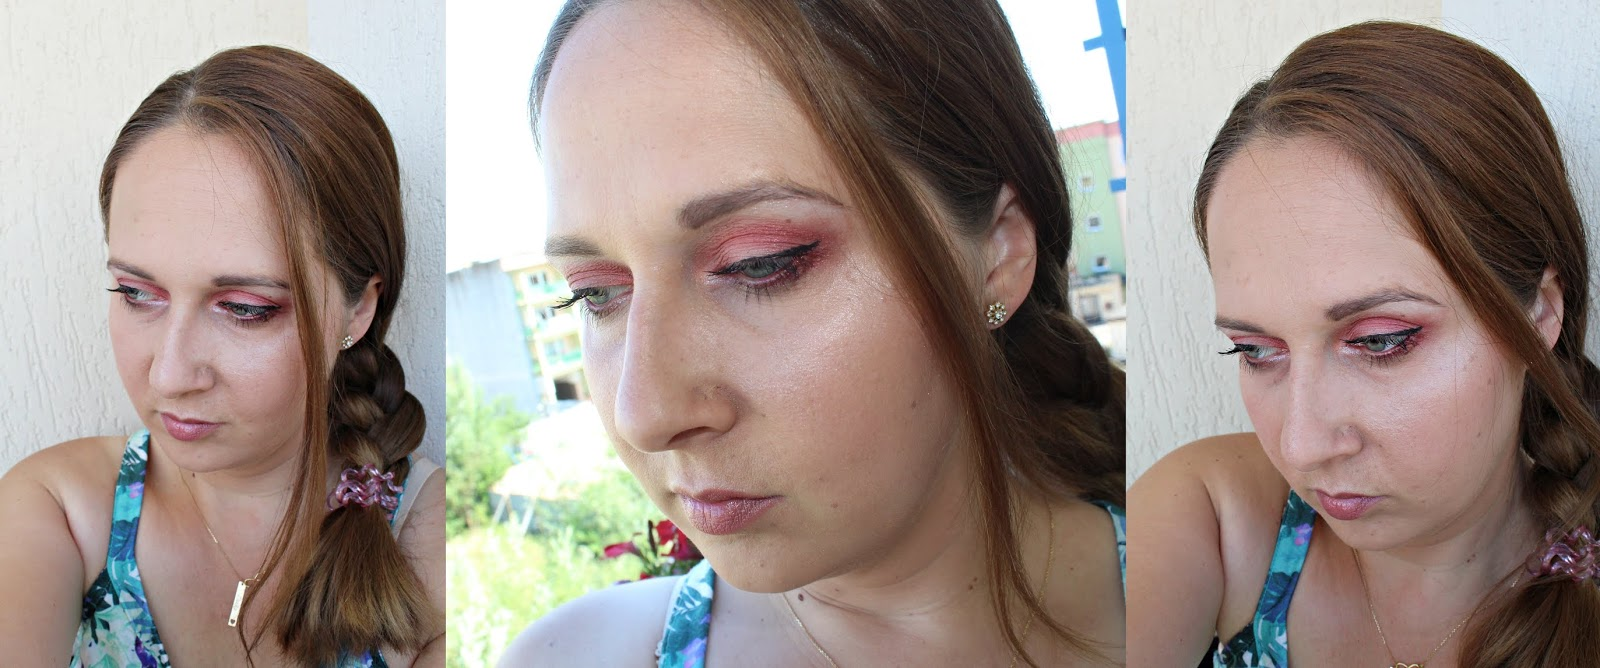 Reloaded Newtrals 2 - Paleta cieni od MAKEUP REVOLUTION